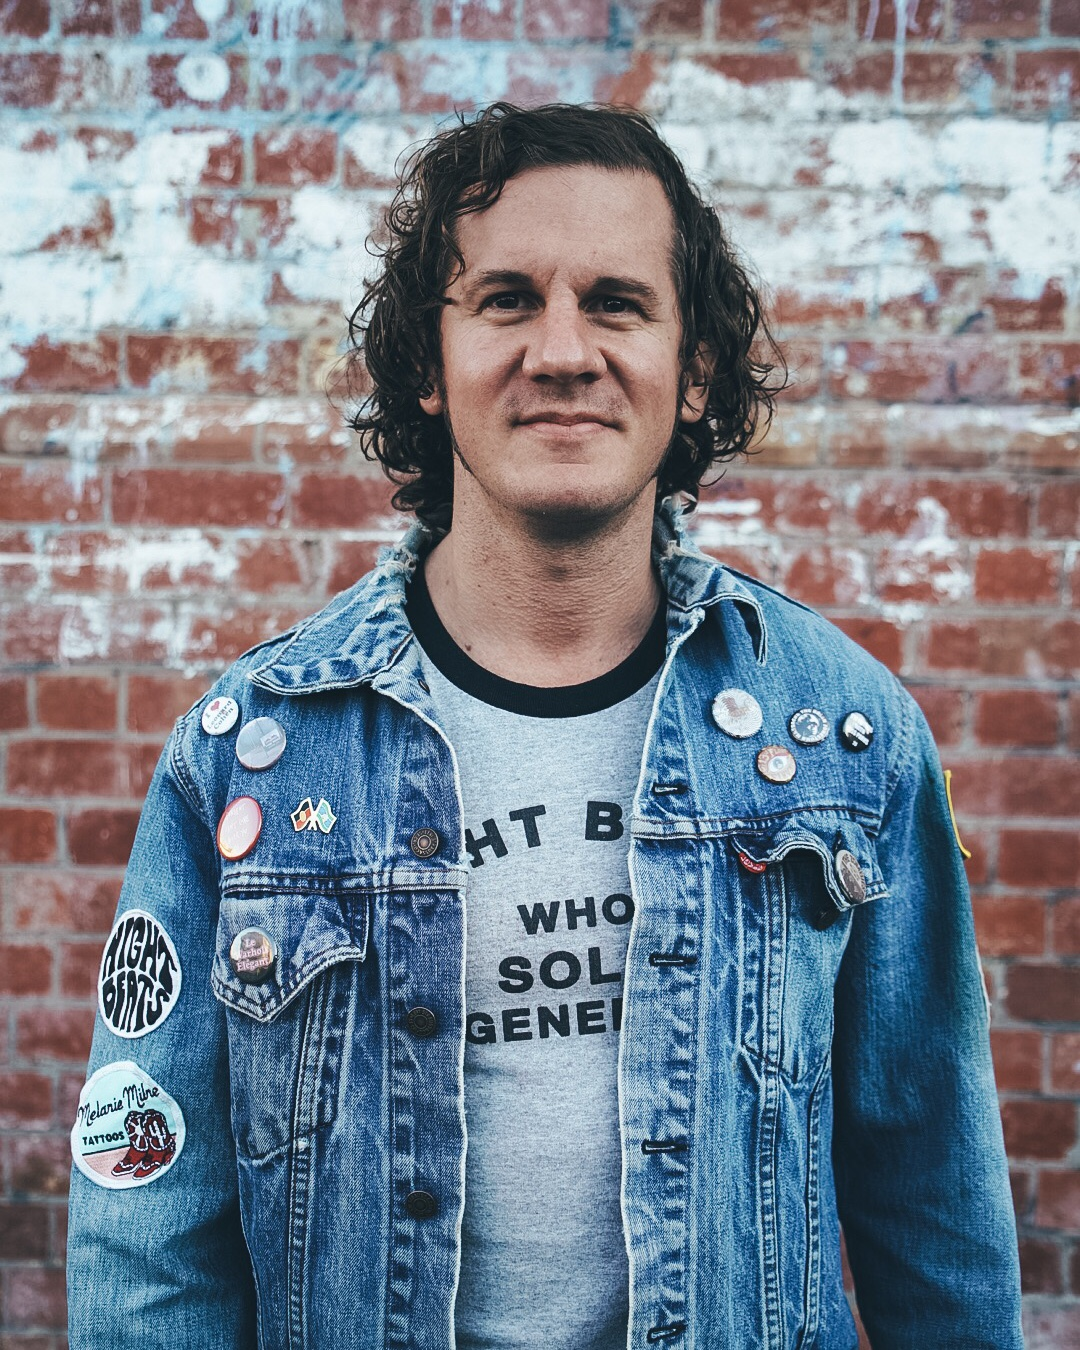 David Couri, new Executive Manager of Octapod, photographed in a t-shirt and denim jacket covered with buttons and patches.